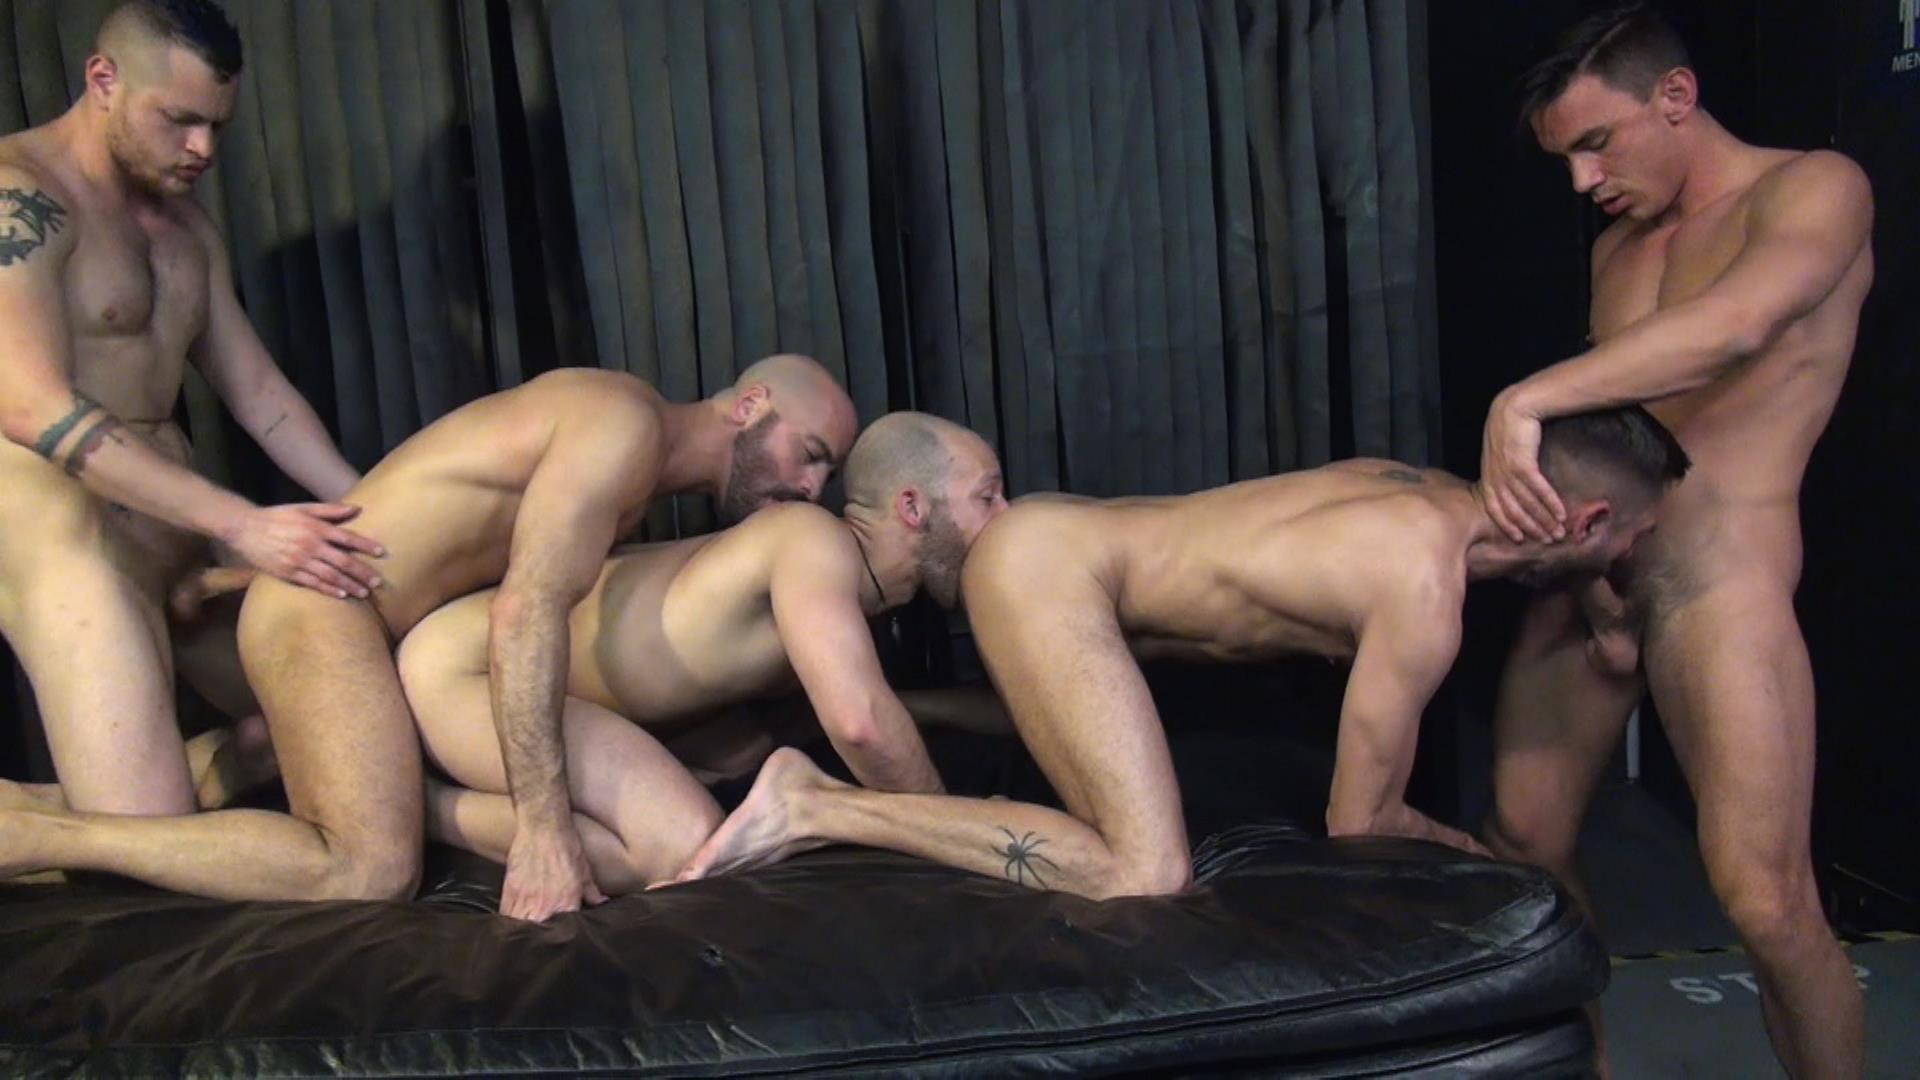 Raw-Fuck-Club-Blue-Bailey-and-Dylan-Strokes-and-Adam-Russo-and-Dean-Brody-and-Jay-Brix-Bareback-Orgy-Amateur-Gay-Porn-6 Adam Russo Getting Double Penetrated At A Bareback Sex Party